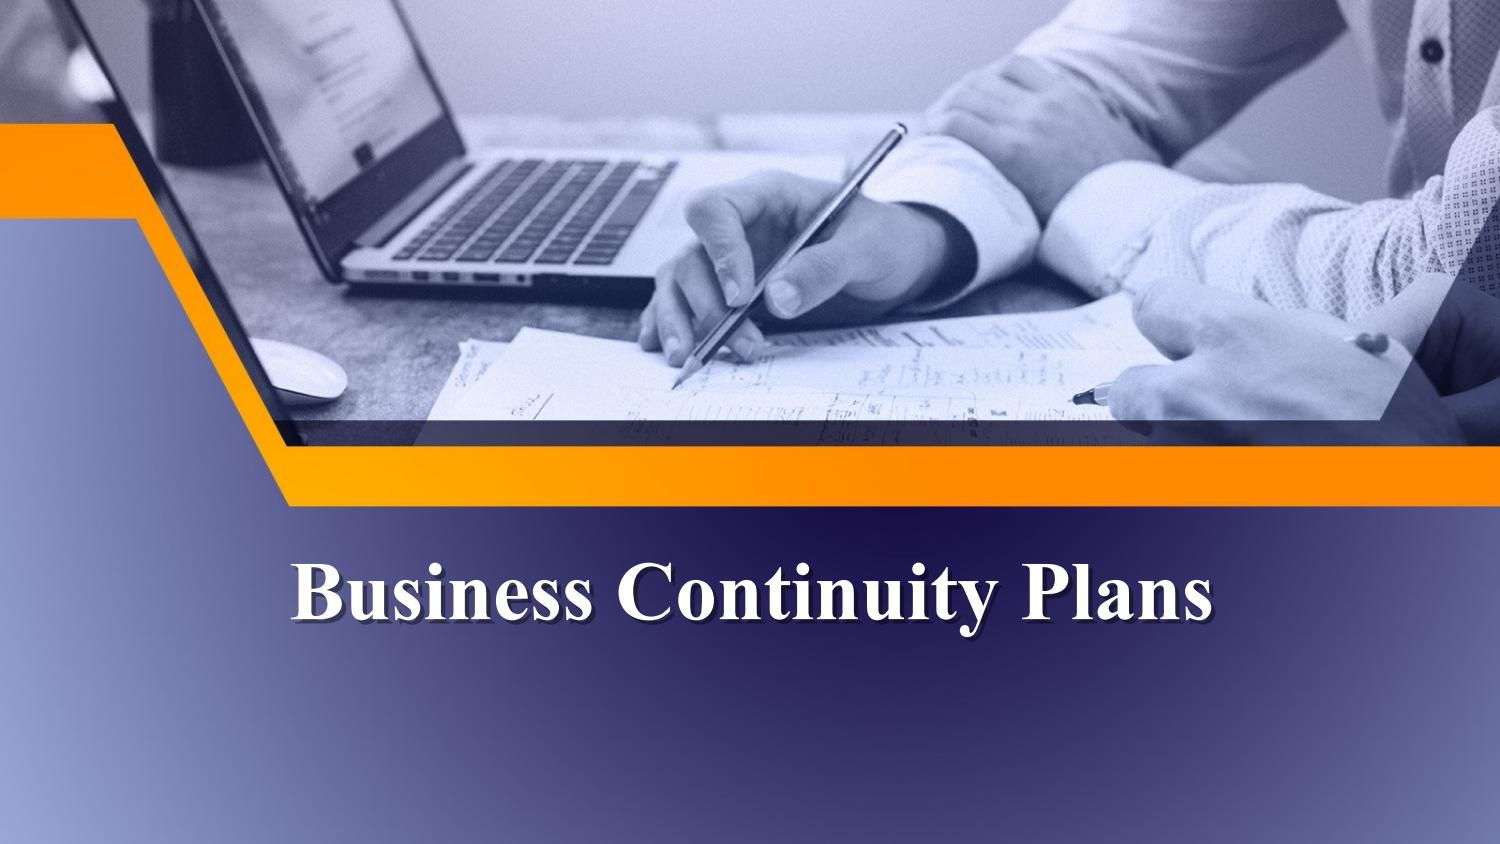 Business continuity plans (With images) Business